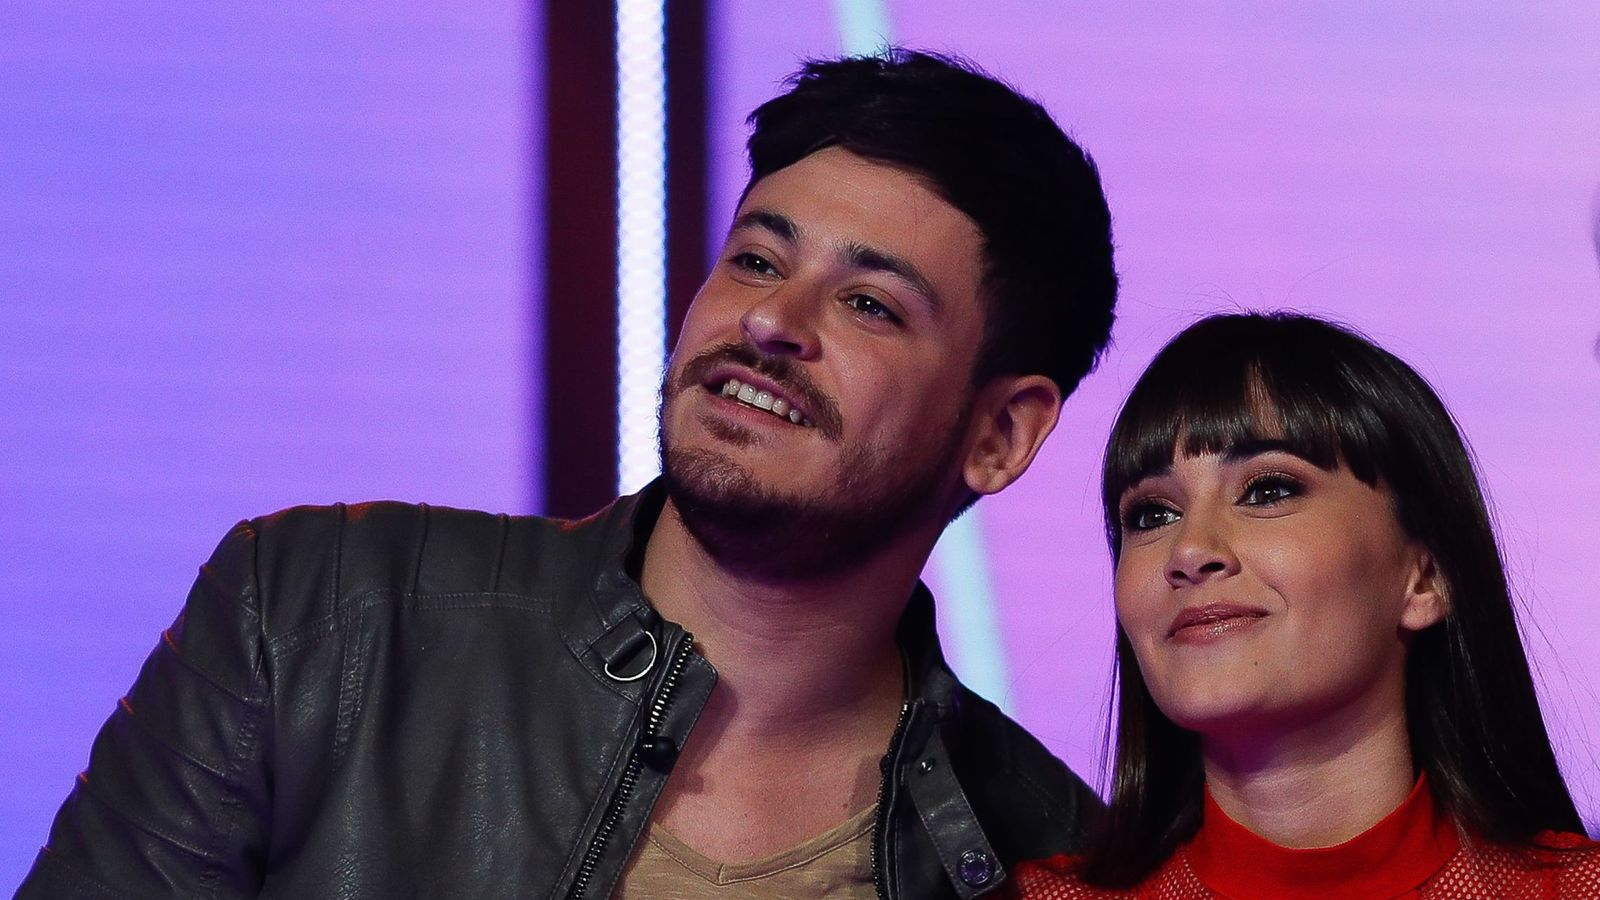 Foto: Aitana y Luis Cepeda. (Cordon Press).